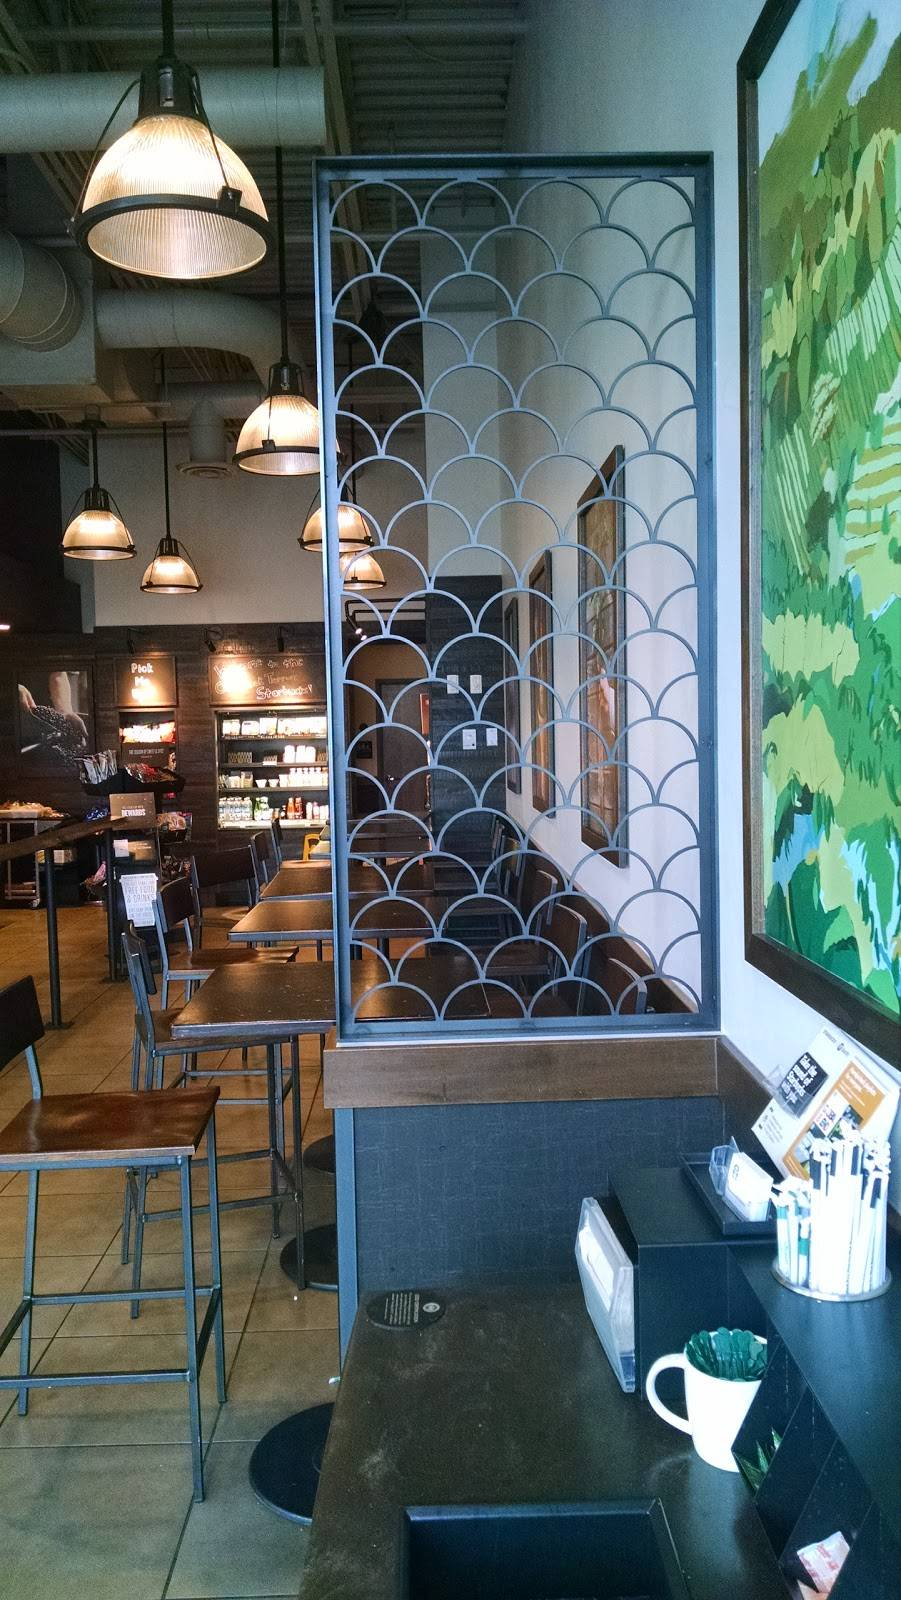 Starbucks   cafe   17 W, 633 Roosevelt Rd, Oakbrook Terrace, IL 60181, USA   2245009575 OR +1 224-500-9575